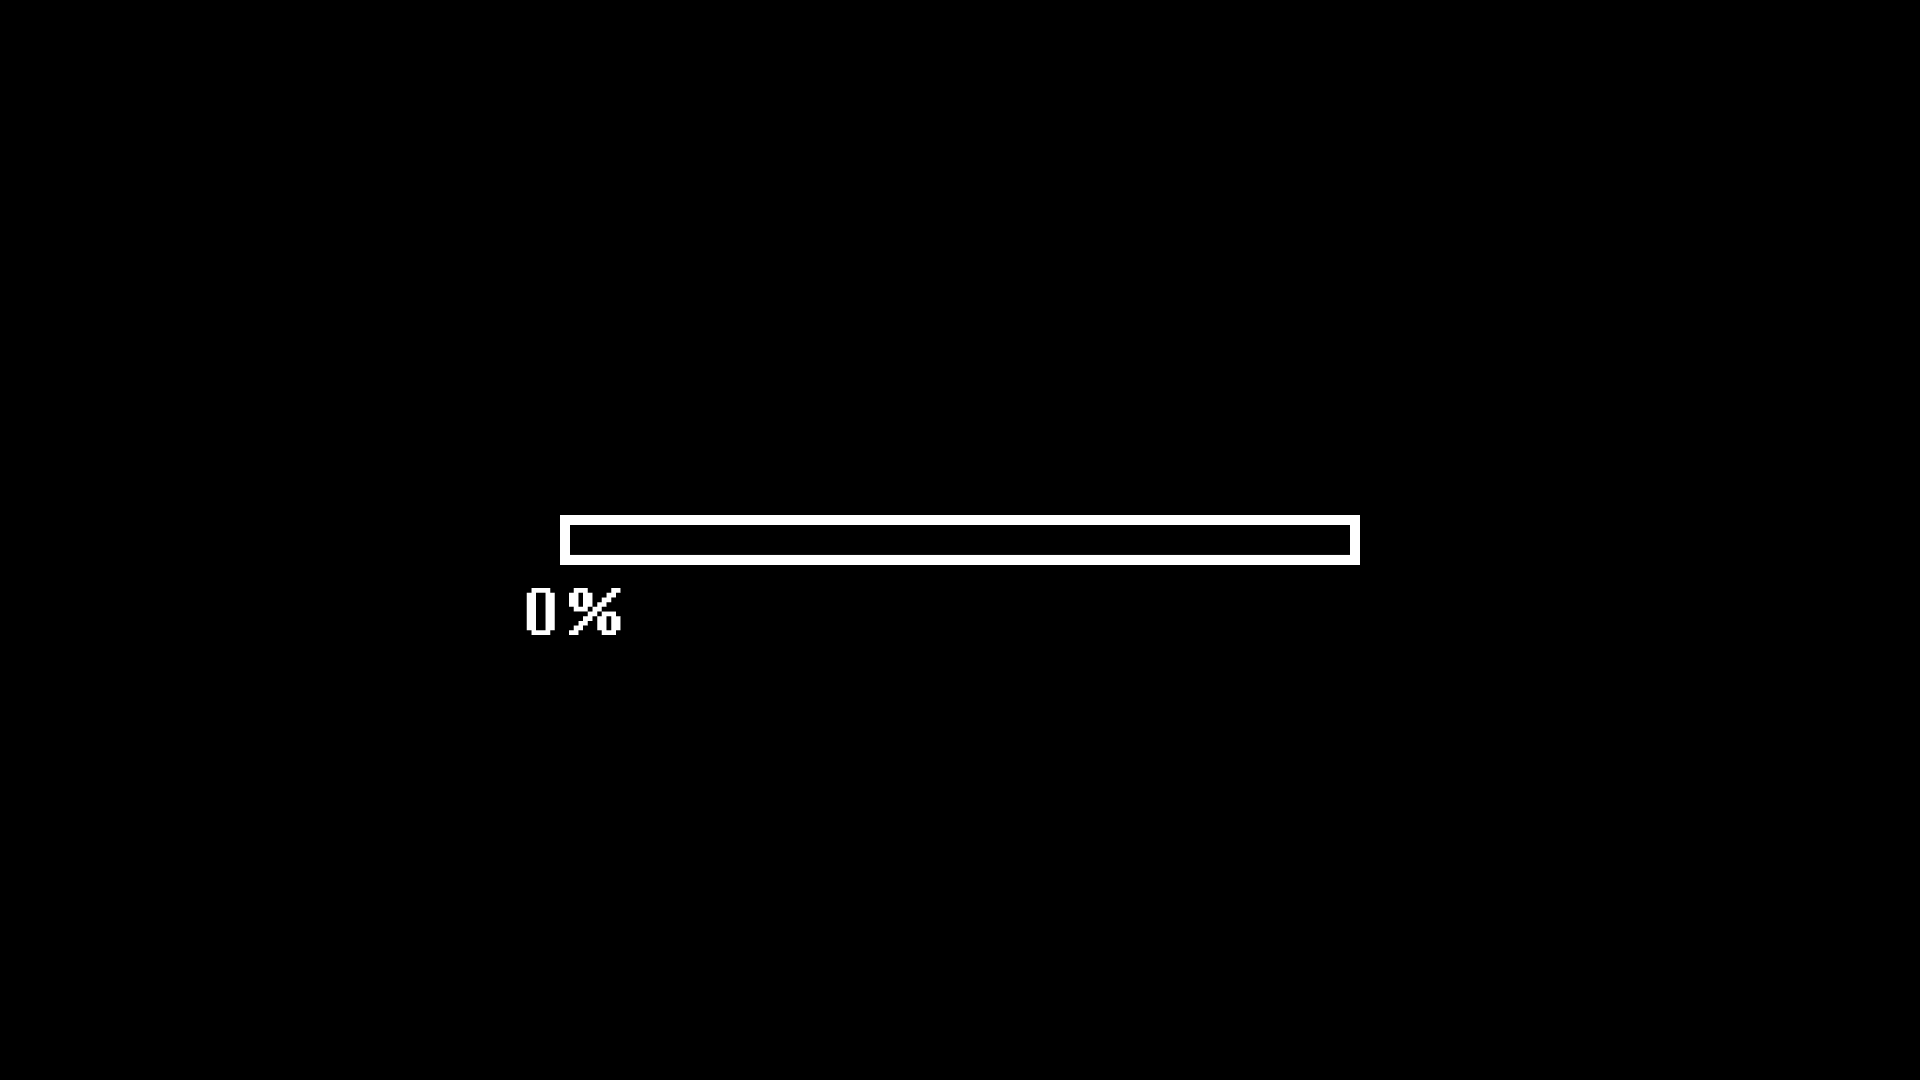 Free After Effects Project File - Progress Bar Percentage - short